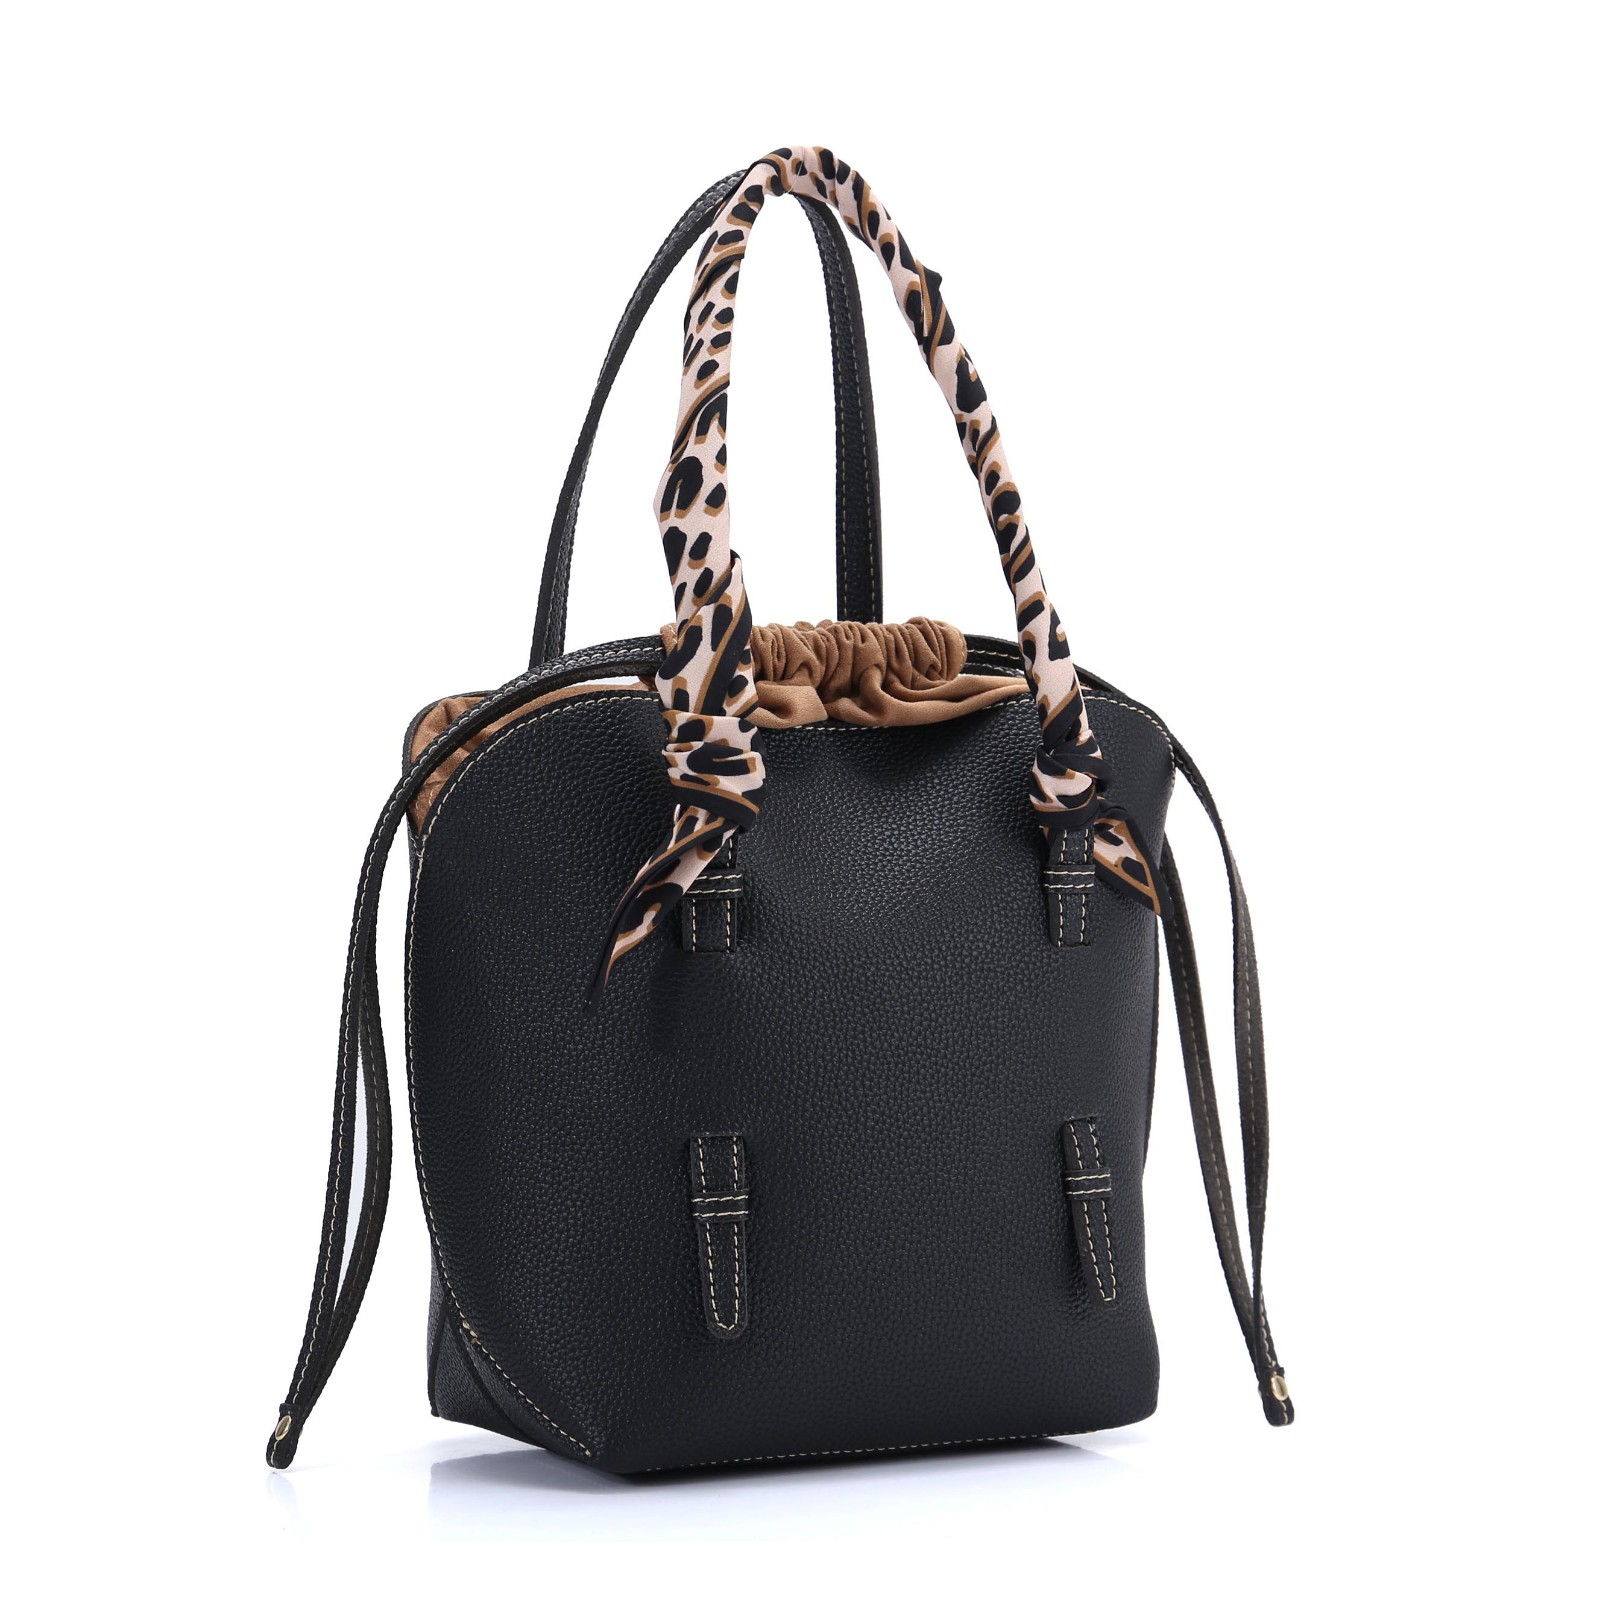 ANGEDANLIA box woven leather bag manufacturer for school-6